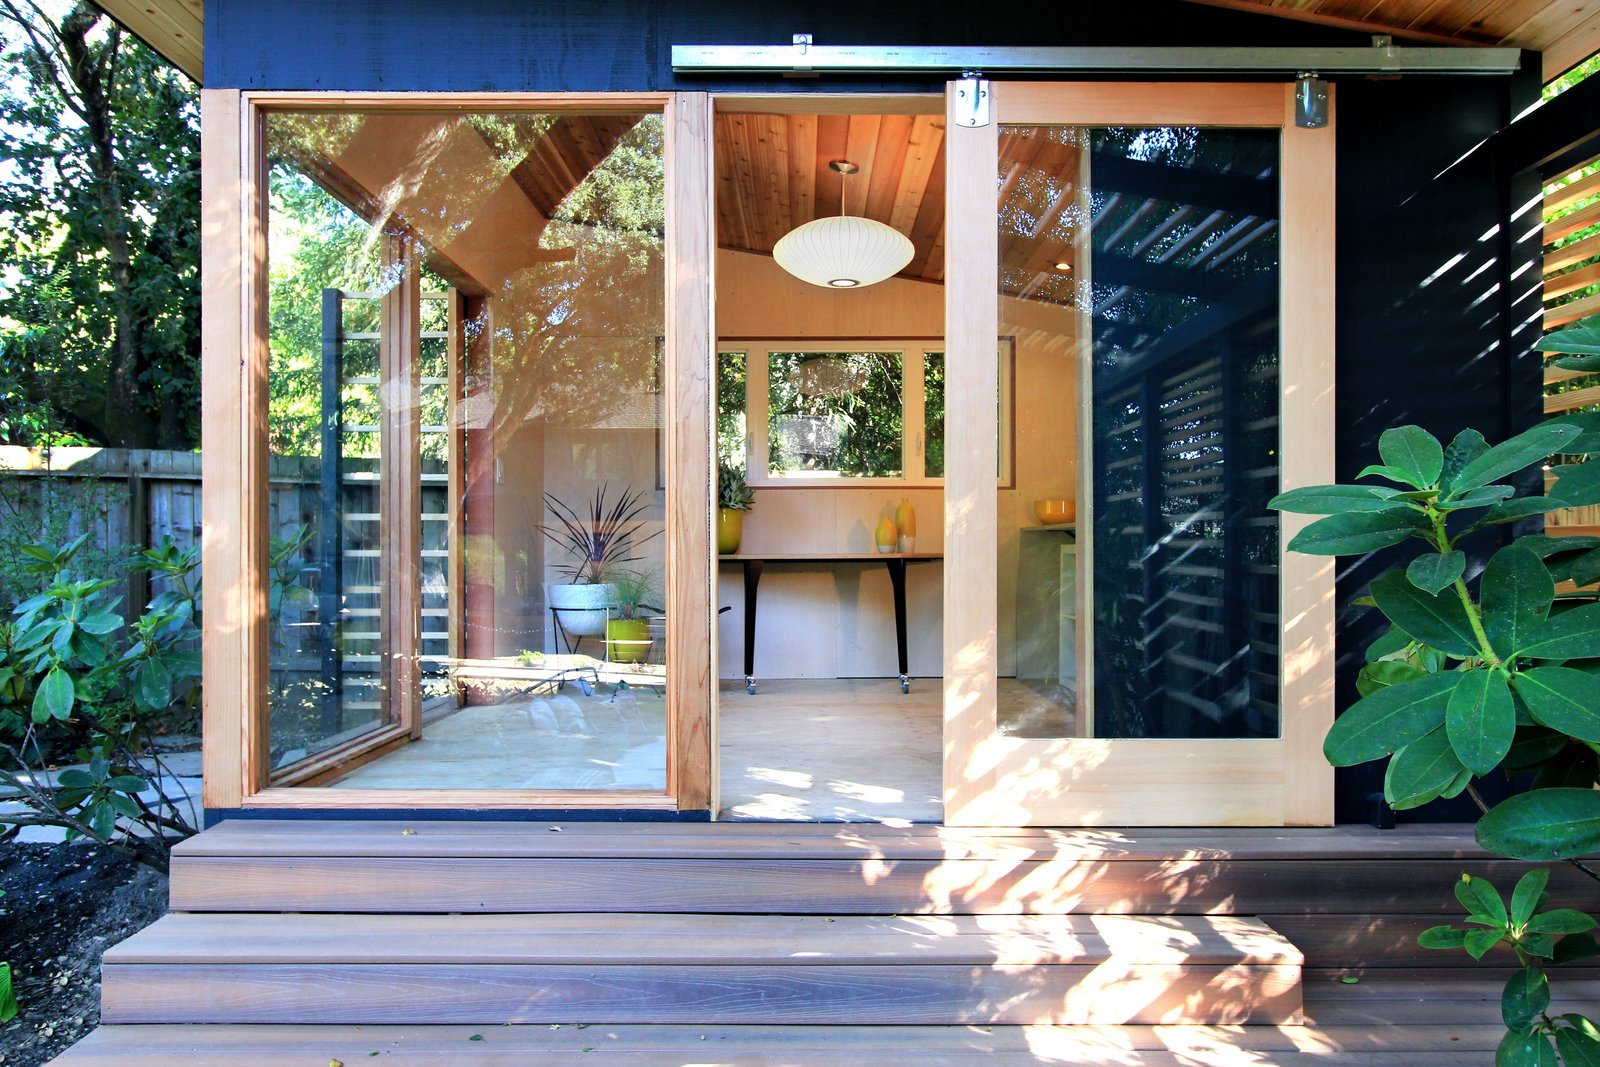 Boulders, Wood Patio, Porch, Deck, Hanging Lighting, Landscape Lighting, Horizontal Fences, Wall, and Kids Room The Shudio exterior and interior.   The Shudio by Melissa Hanley